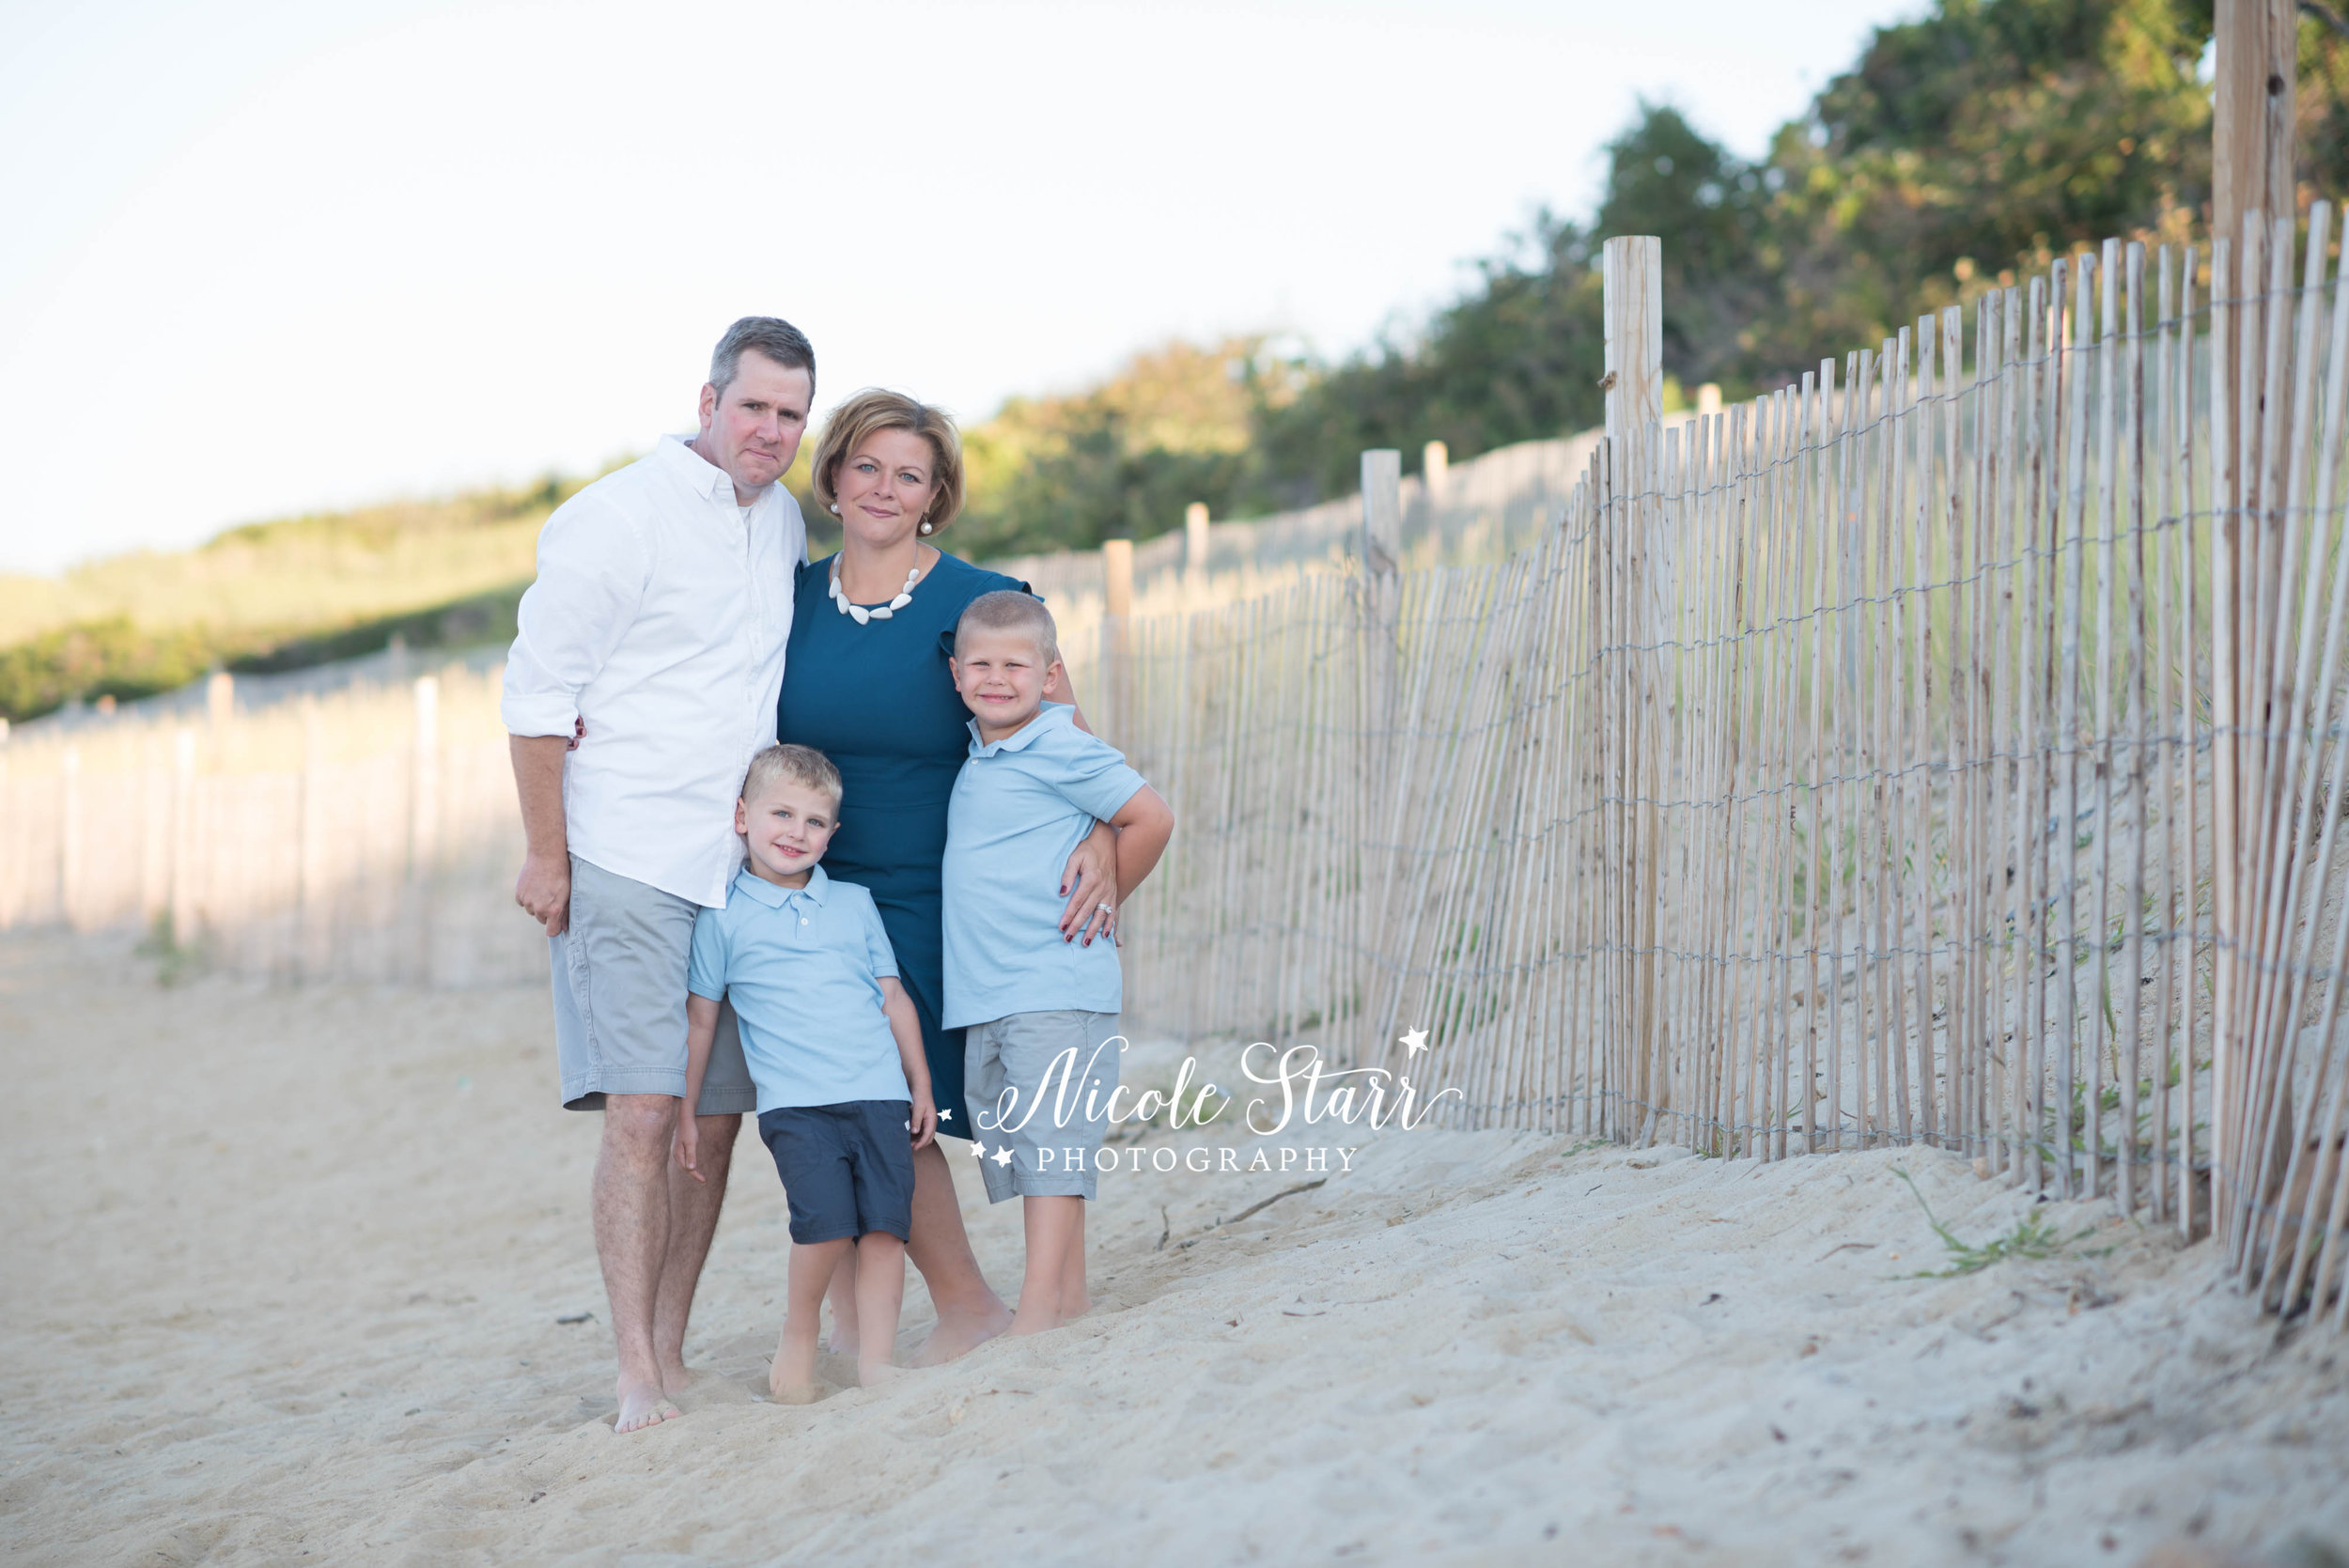 Family photographer at Corporation Beach in Dennis, Cape Cod